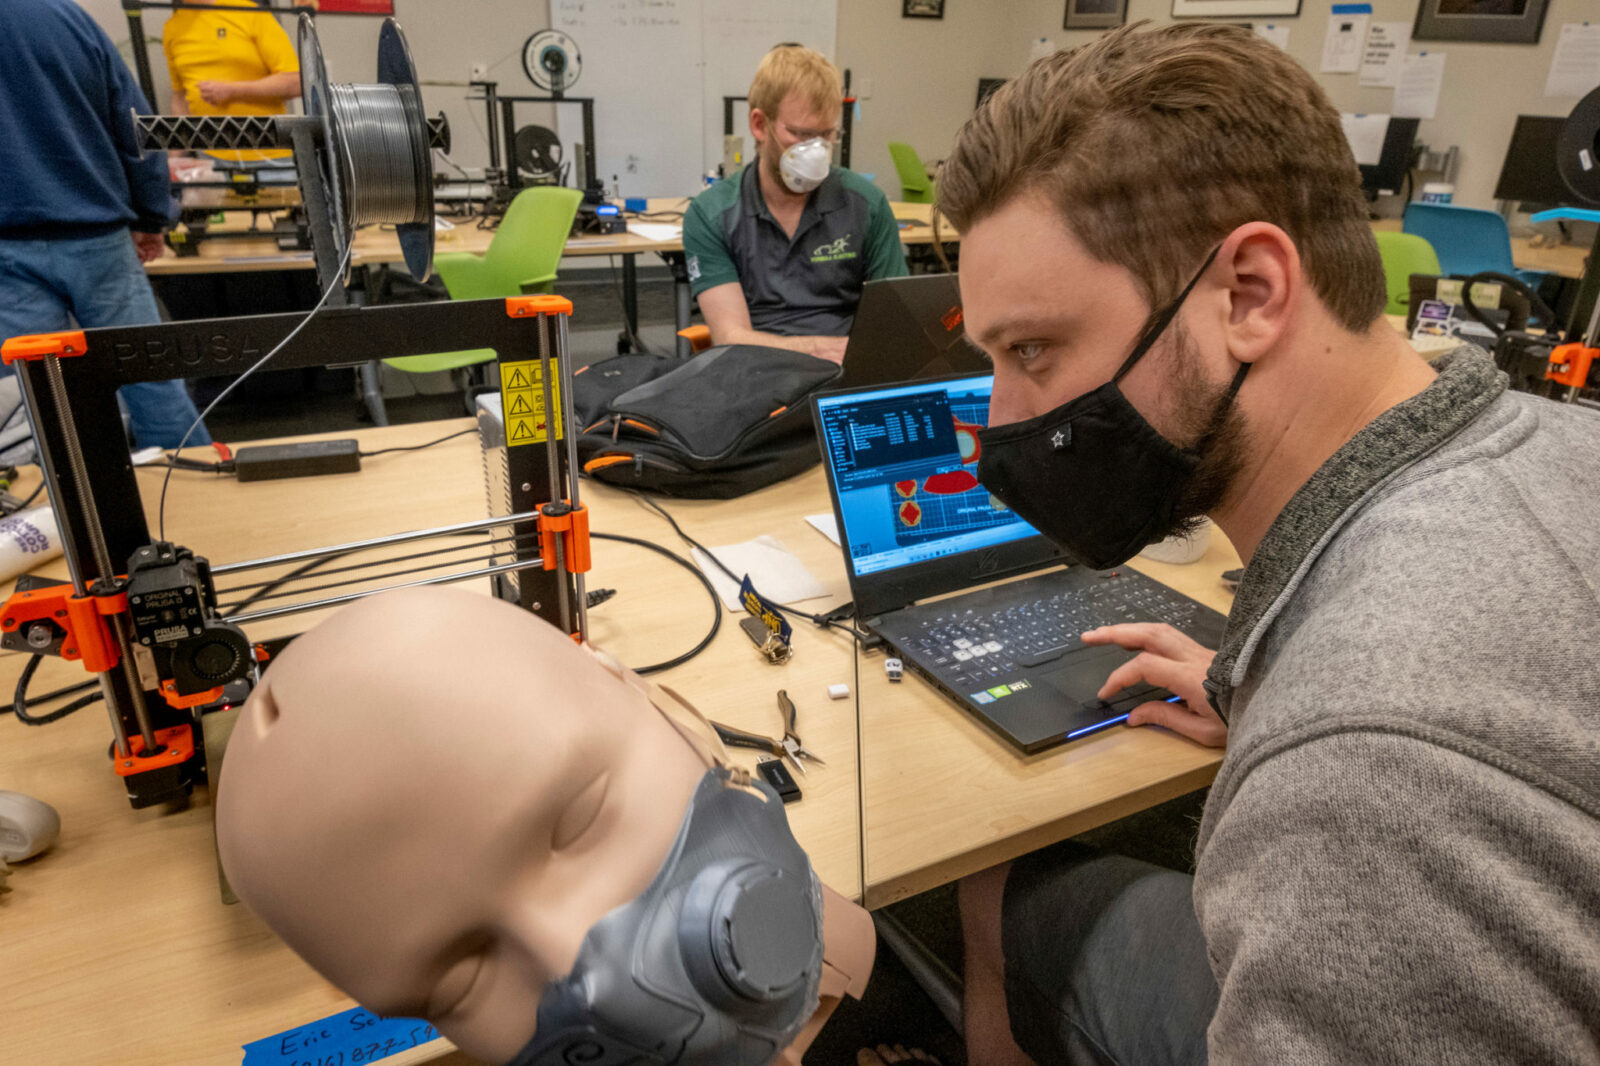 Eric Schneider, a senior aerospace engineering student at Missouri S&T, tests the fit of a prototype 3-D printed surgical mask on the head of a mannequin in the Kummer Student Design Center at S&T. In the background is Stephen Williams, an S&T mechanical engineering student. The university is helping Phelps Health prepare for coronavirus patients by 3-D printing masks and face shield brackets.